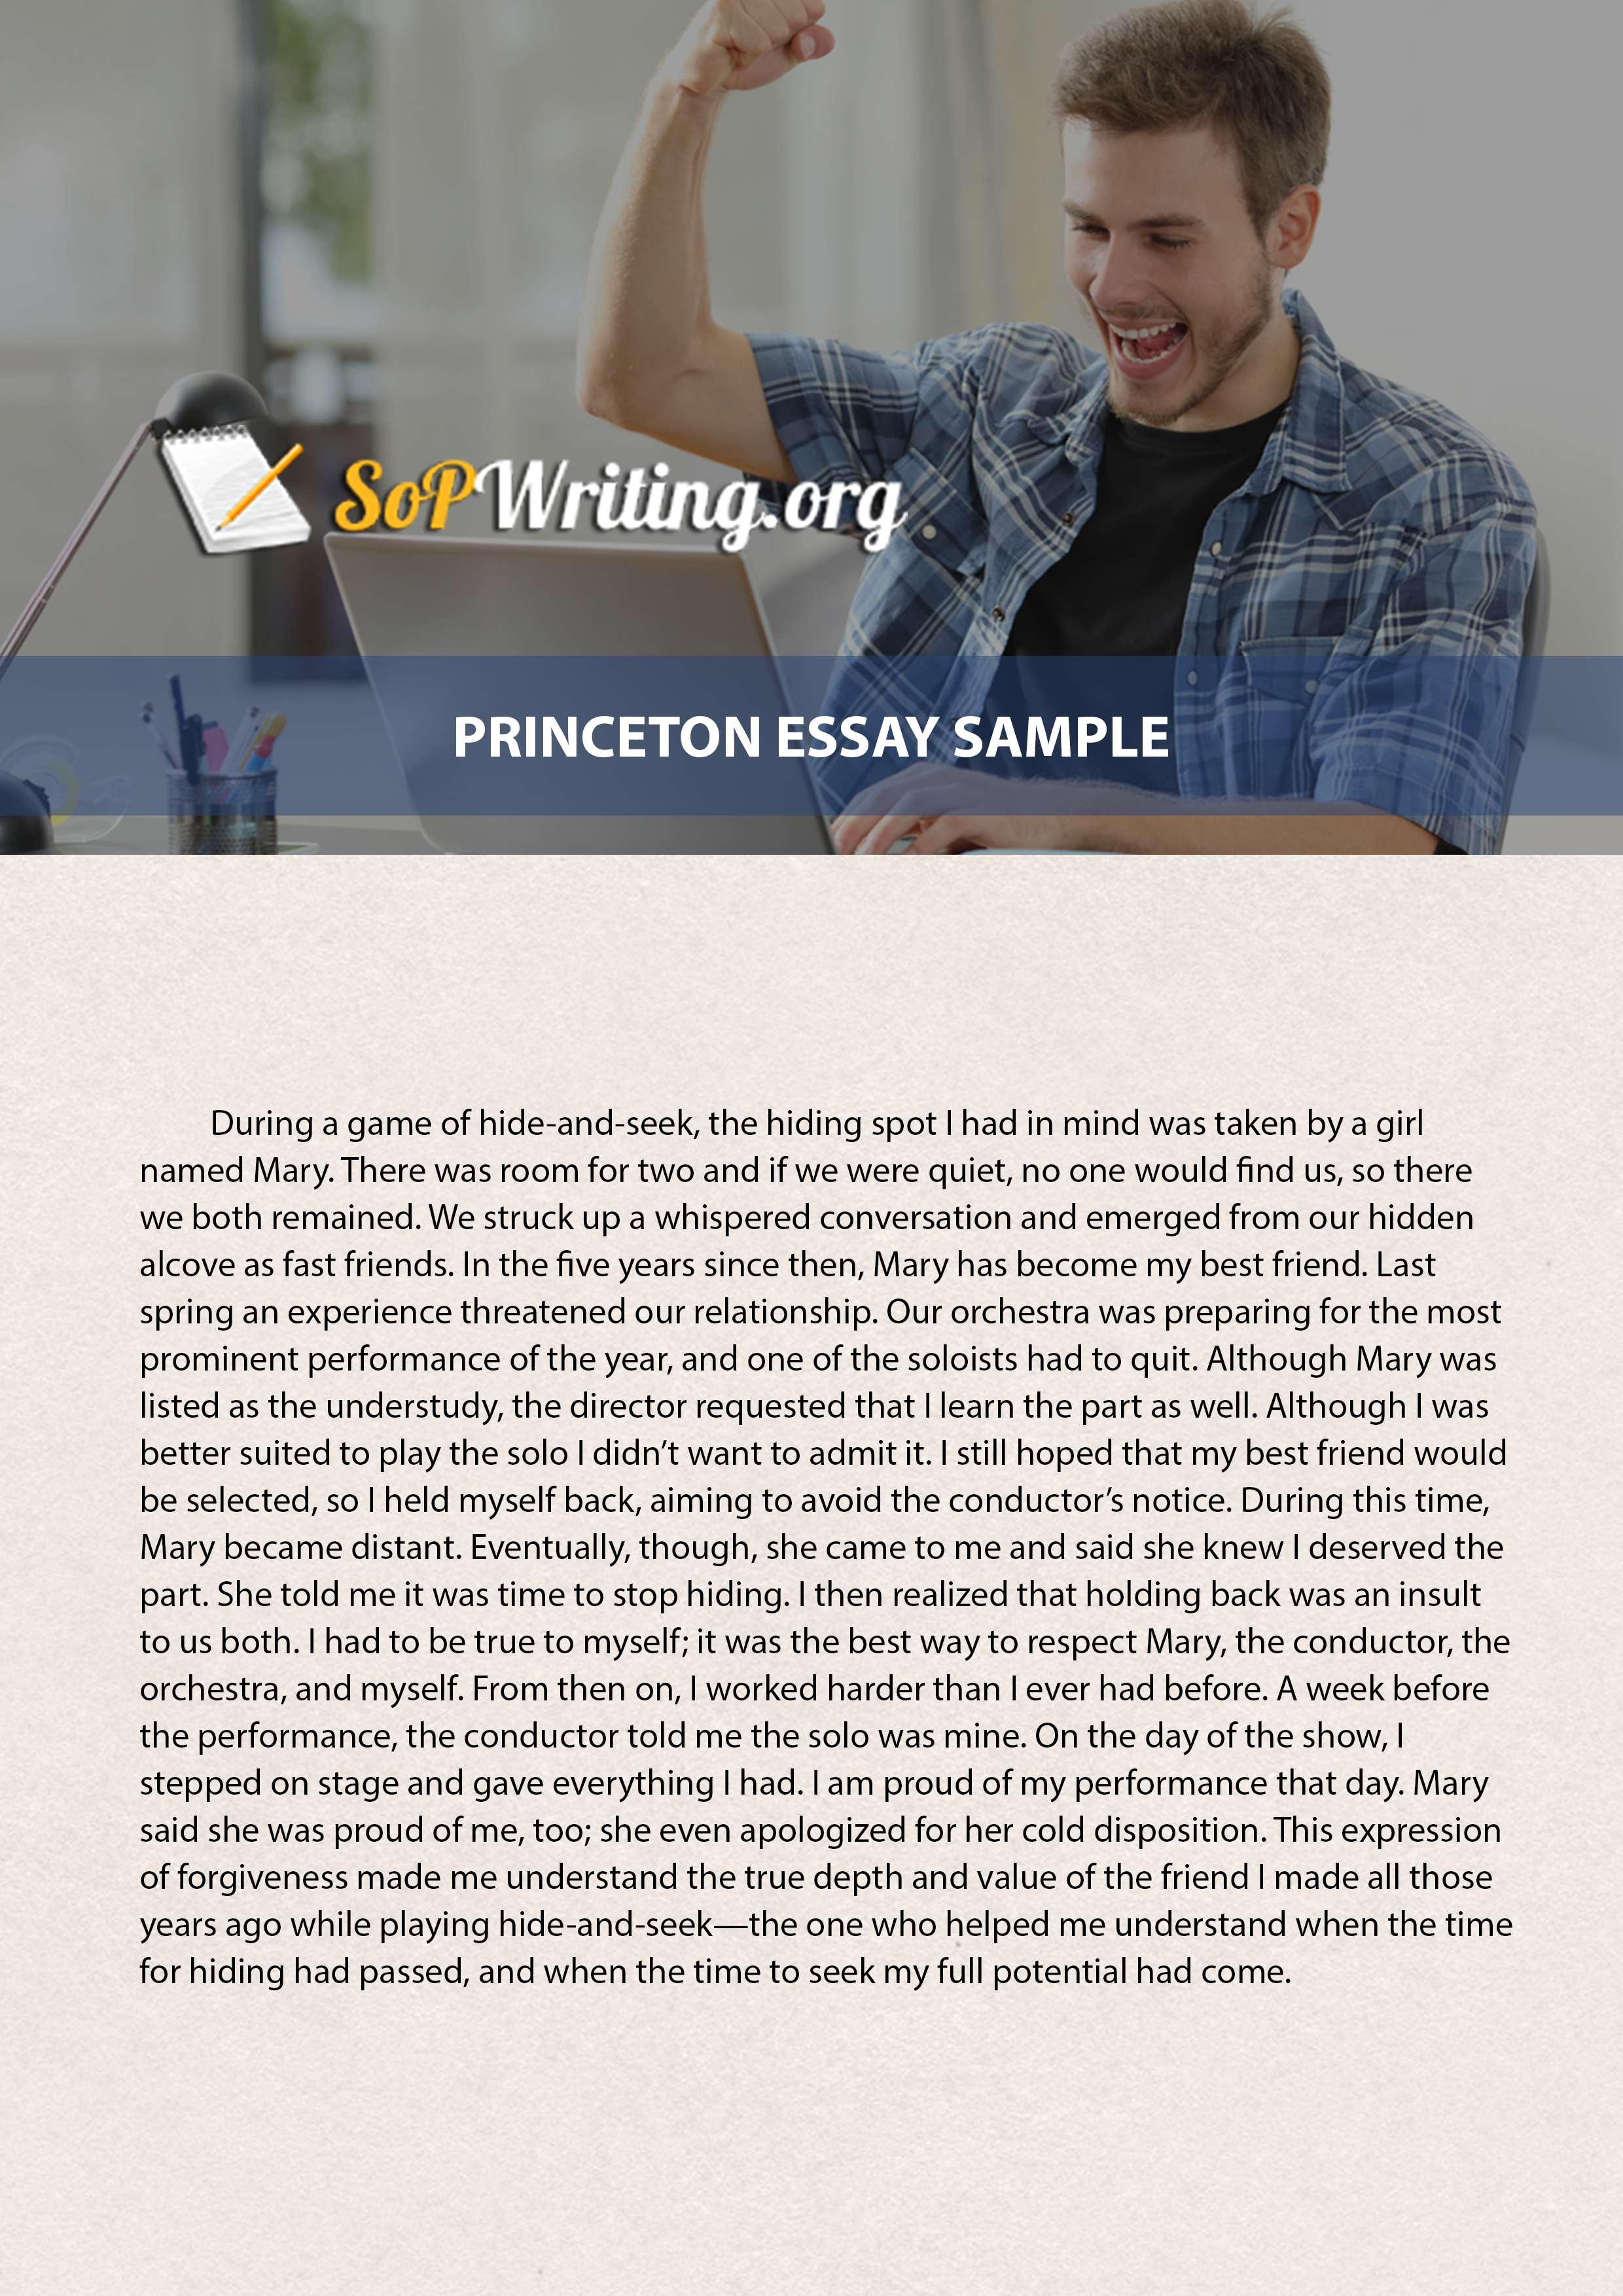 010 Princeton Essay Prompts Sample Sop Writing Dreaded University Prompt 2016 Full